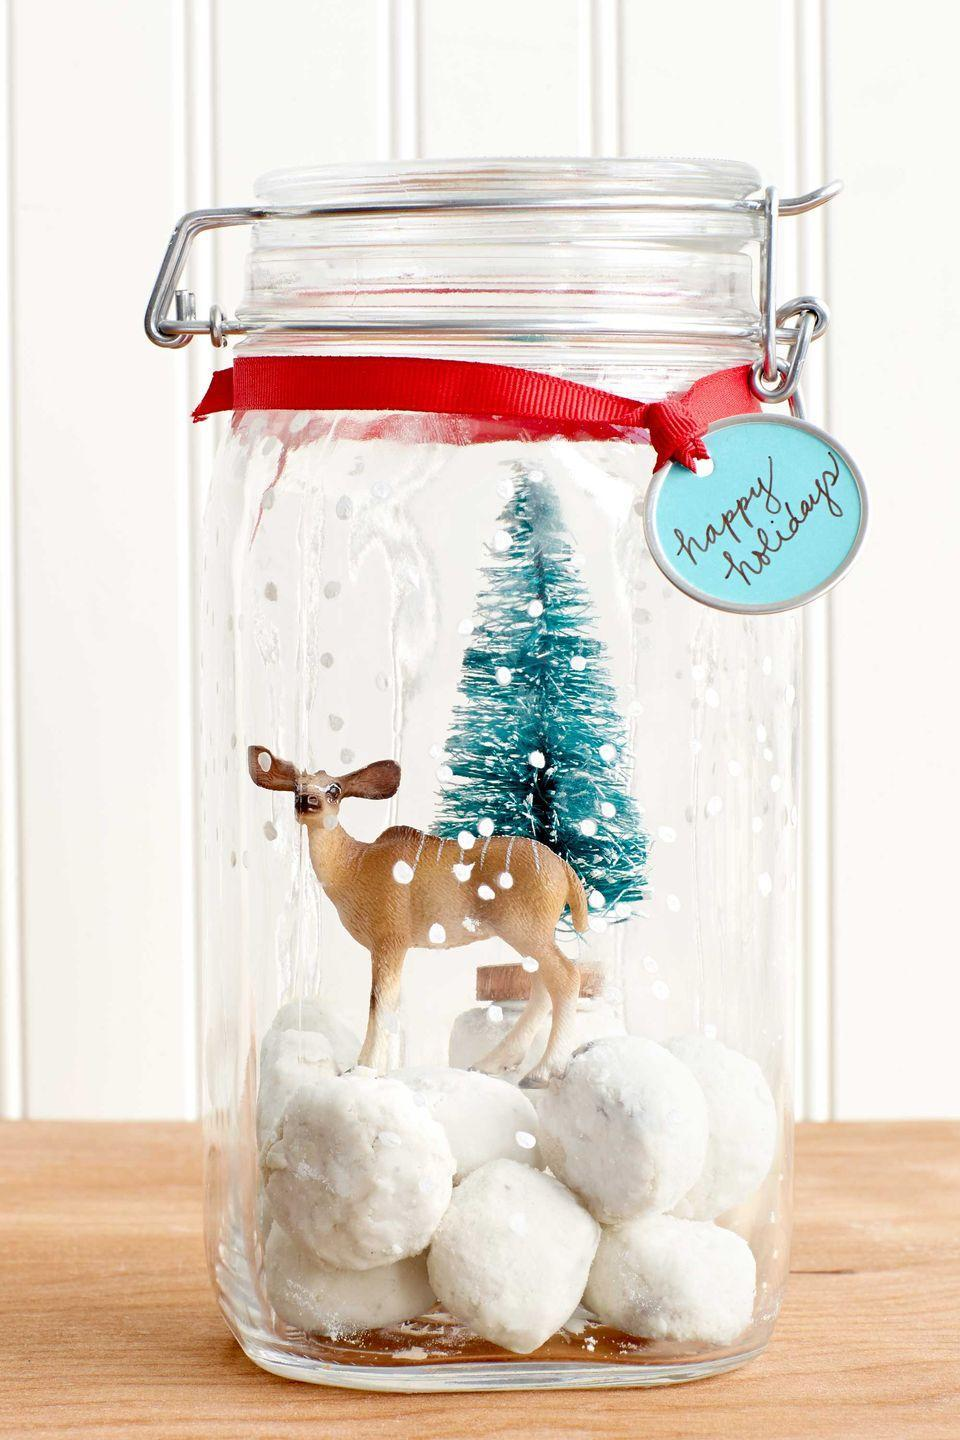 """<p>Skip the same-old tin and give cookies in a festive (airtight!) jar instead.</p><p><strong>Step 1:</strong> Use a fine-tipped brush to paint small white dots on the outside of a glass jar.</p><p><strong><strong>Step 2:</strong> </strong>Fill bottom of jar with <a href=""""https://www.countryliving.com/food-drinks/recipes/a5975/mexican-wedding-cookies-clx1014/"""" rel=""""nofollow noopener"""" target=""""_blank"""" data-ylk=""""slk:snowball cookies"""" class=""""link rapid-noclick-resp"""">snowball cookies</a>. Place small plastic trinkets inside for a snow globe-inspired vignette.</p><p><strong>Step 3:</strong> Tie gift tag to jar with ribbon.<br></p><p><a class=""""link rapid-noclick-resp"""" href=""""https://www.amazon.com/32oz-Regular-Mouth-Canning-Mason/dp/B01N6QBJG0?tag=syn-yahoo-20&ascsubtag=%5Bartid%7C10050.g.647%5Bsrc%7Cyahoo-us"""" rel=""""nofollow noopener"""" target=""""_blank"""" data-ylk=""""slk:SHOP MASON JARS"""">SHOP MASON JARS</a><br></p>"""